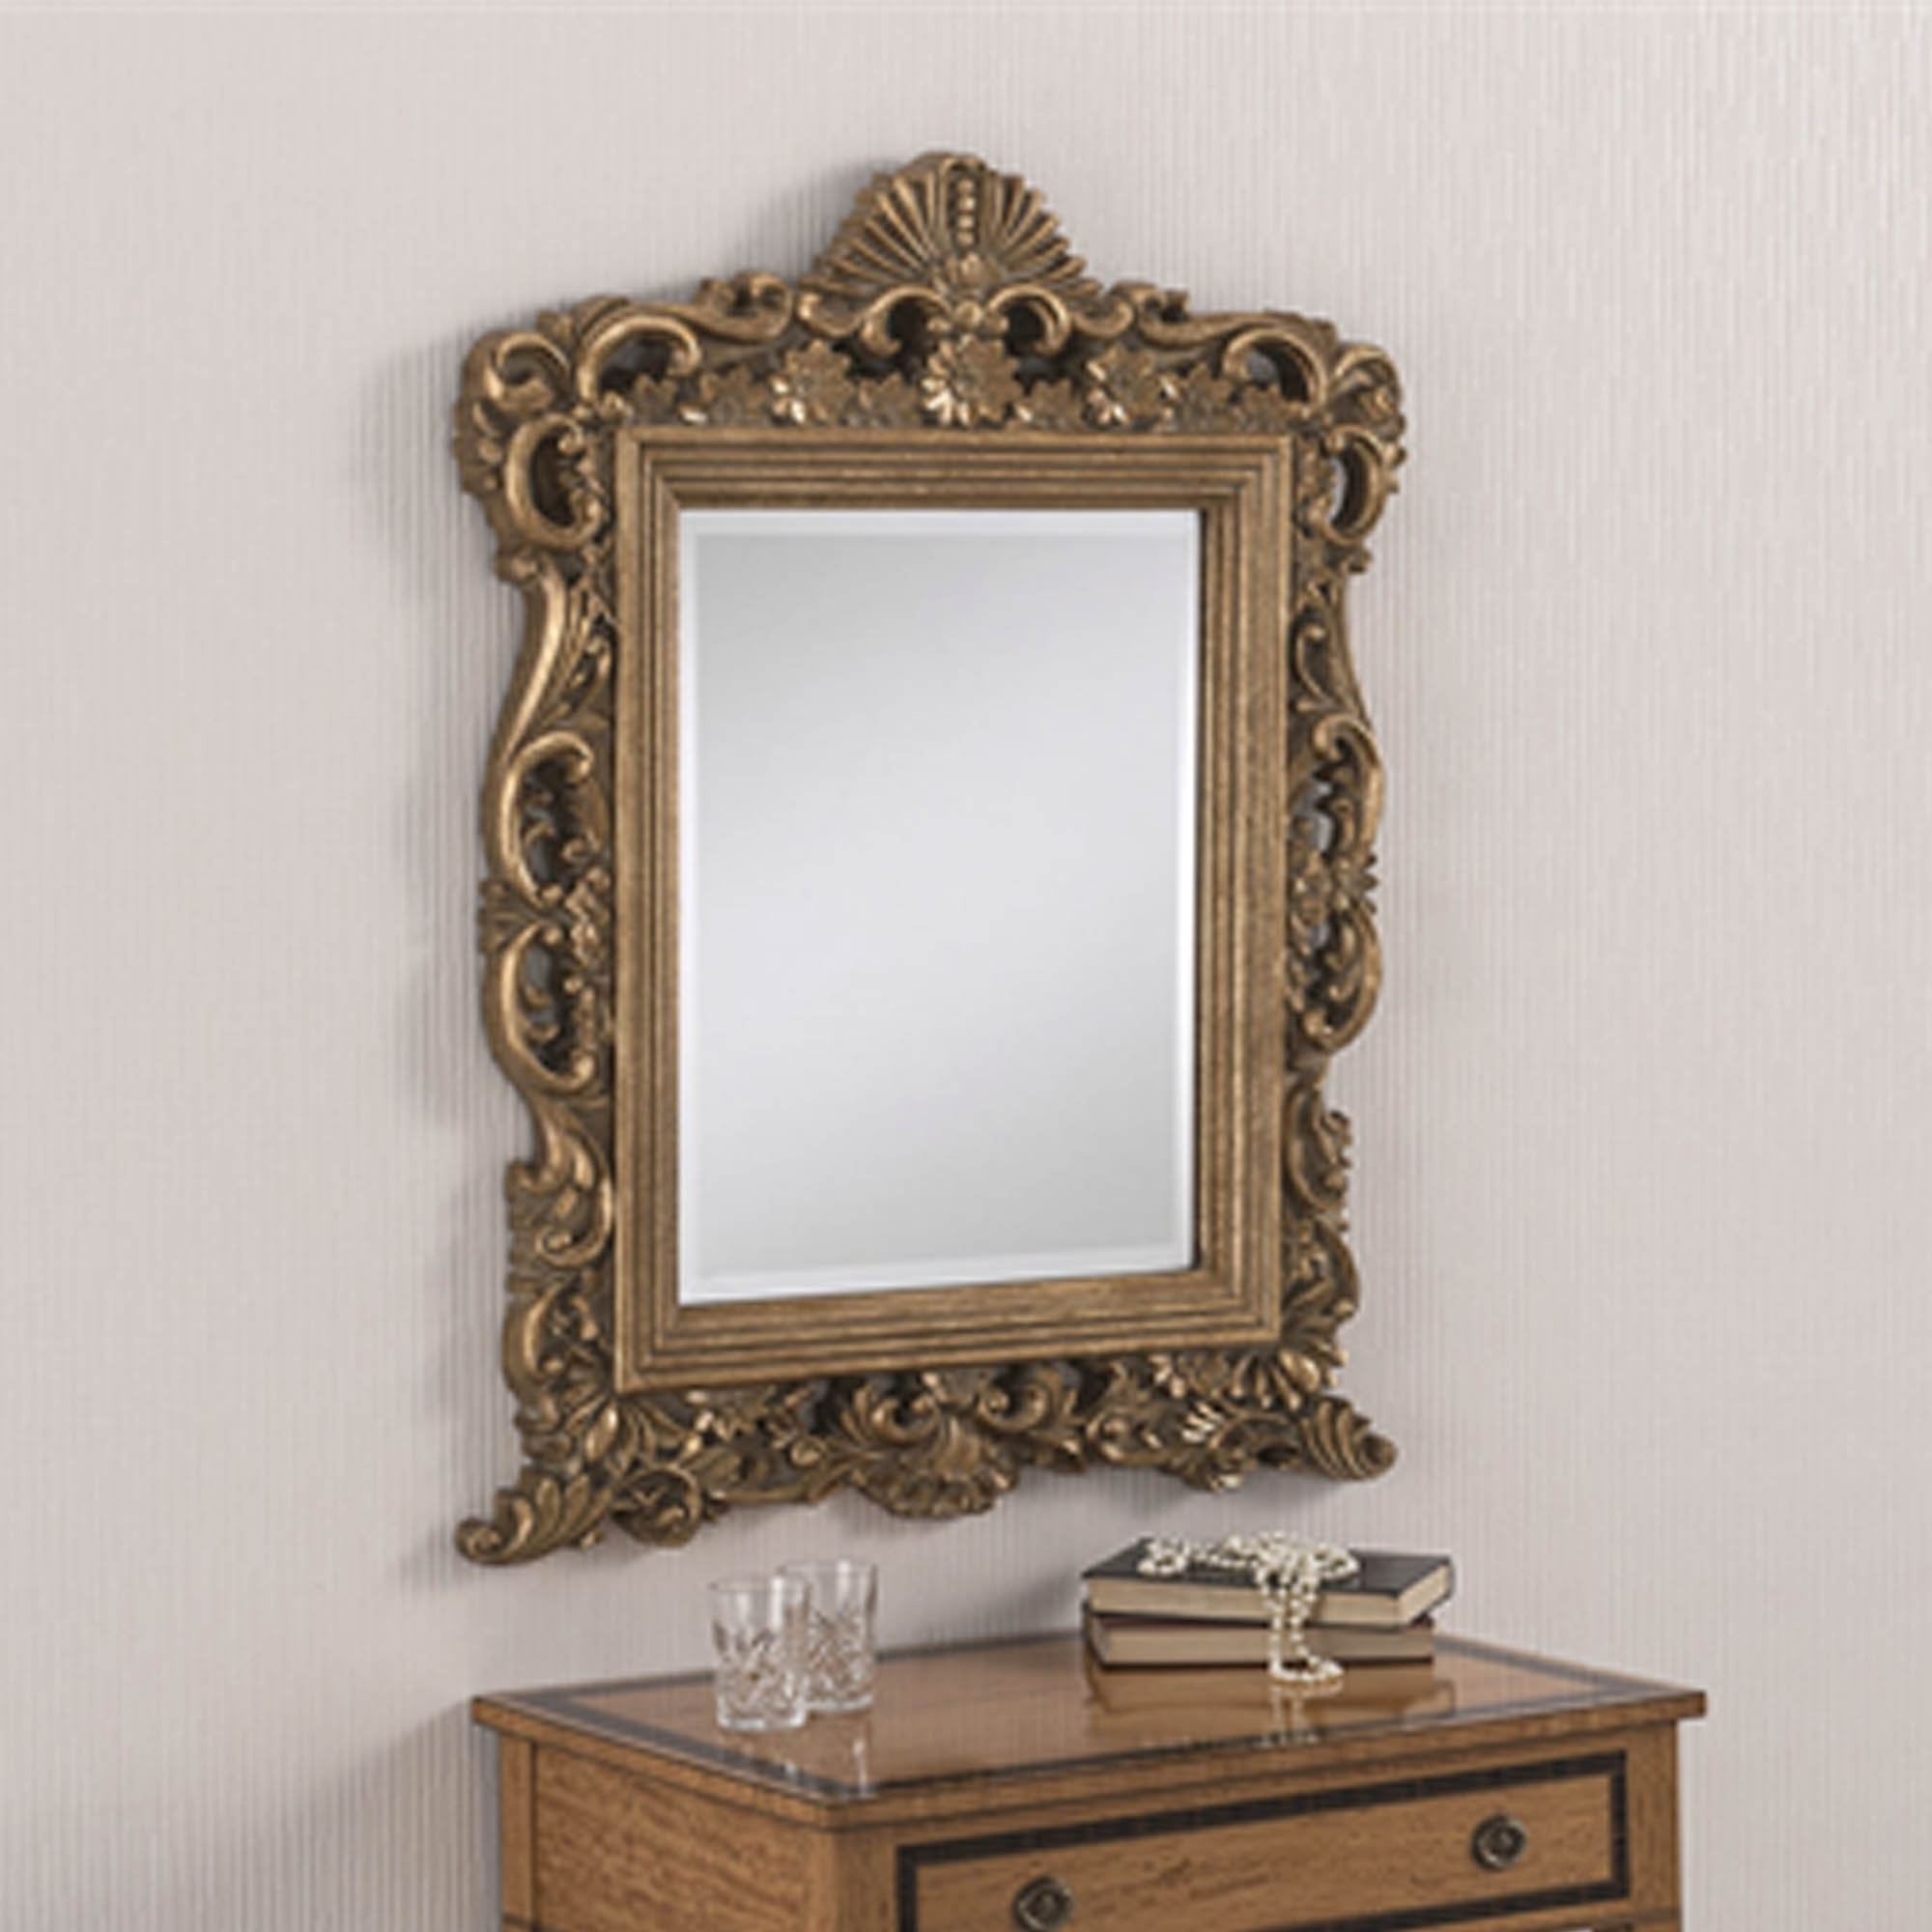 Decorative Antique French Style Gold Ornate Wall Mirror